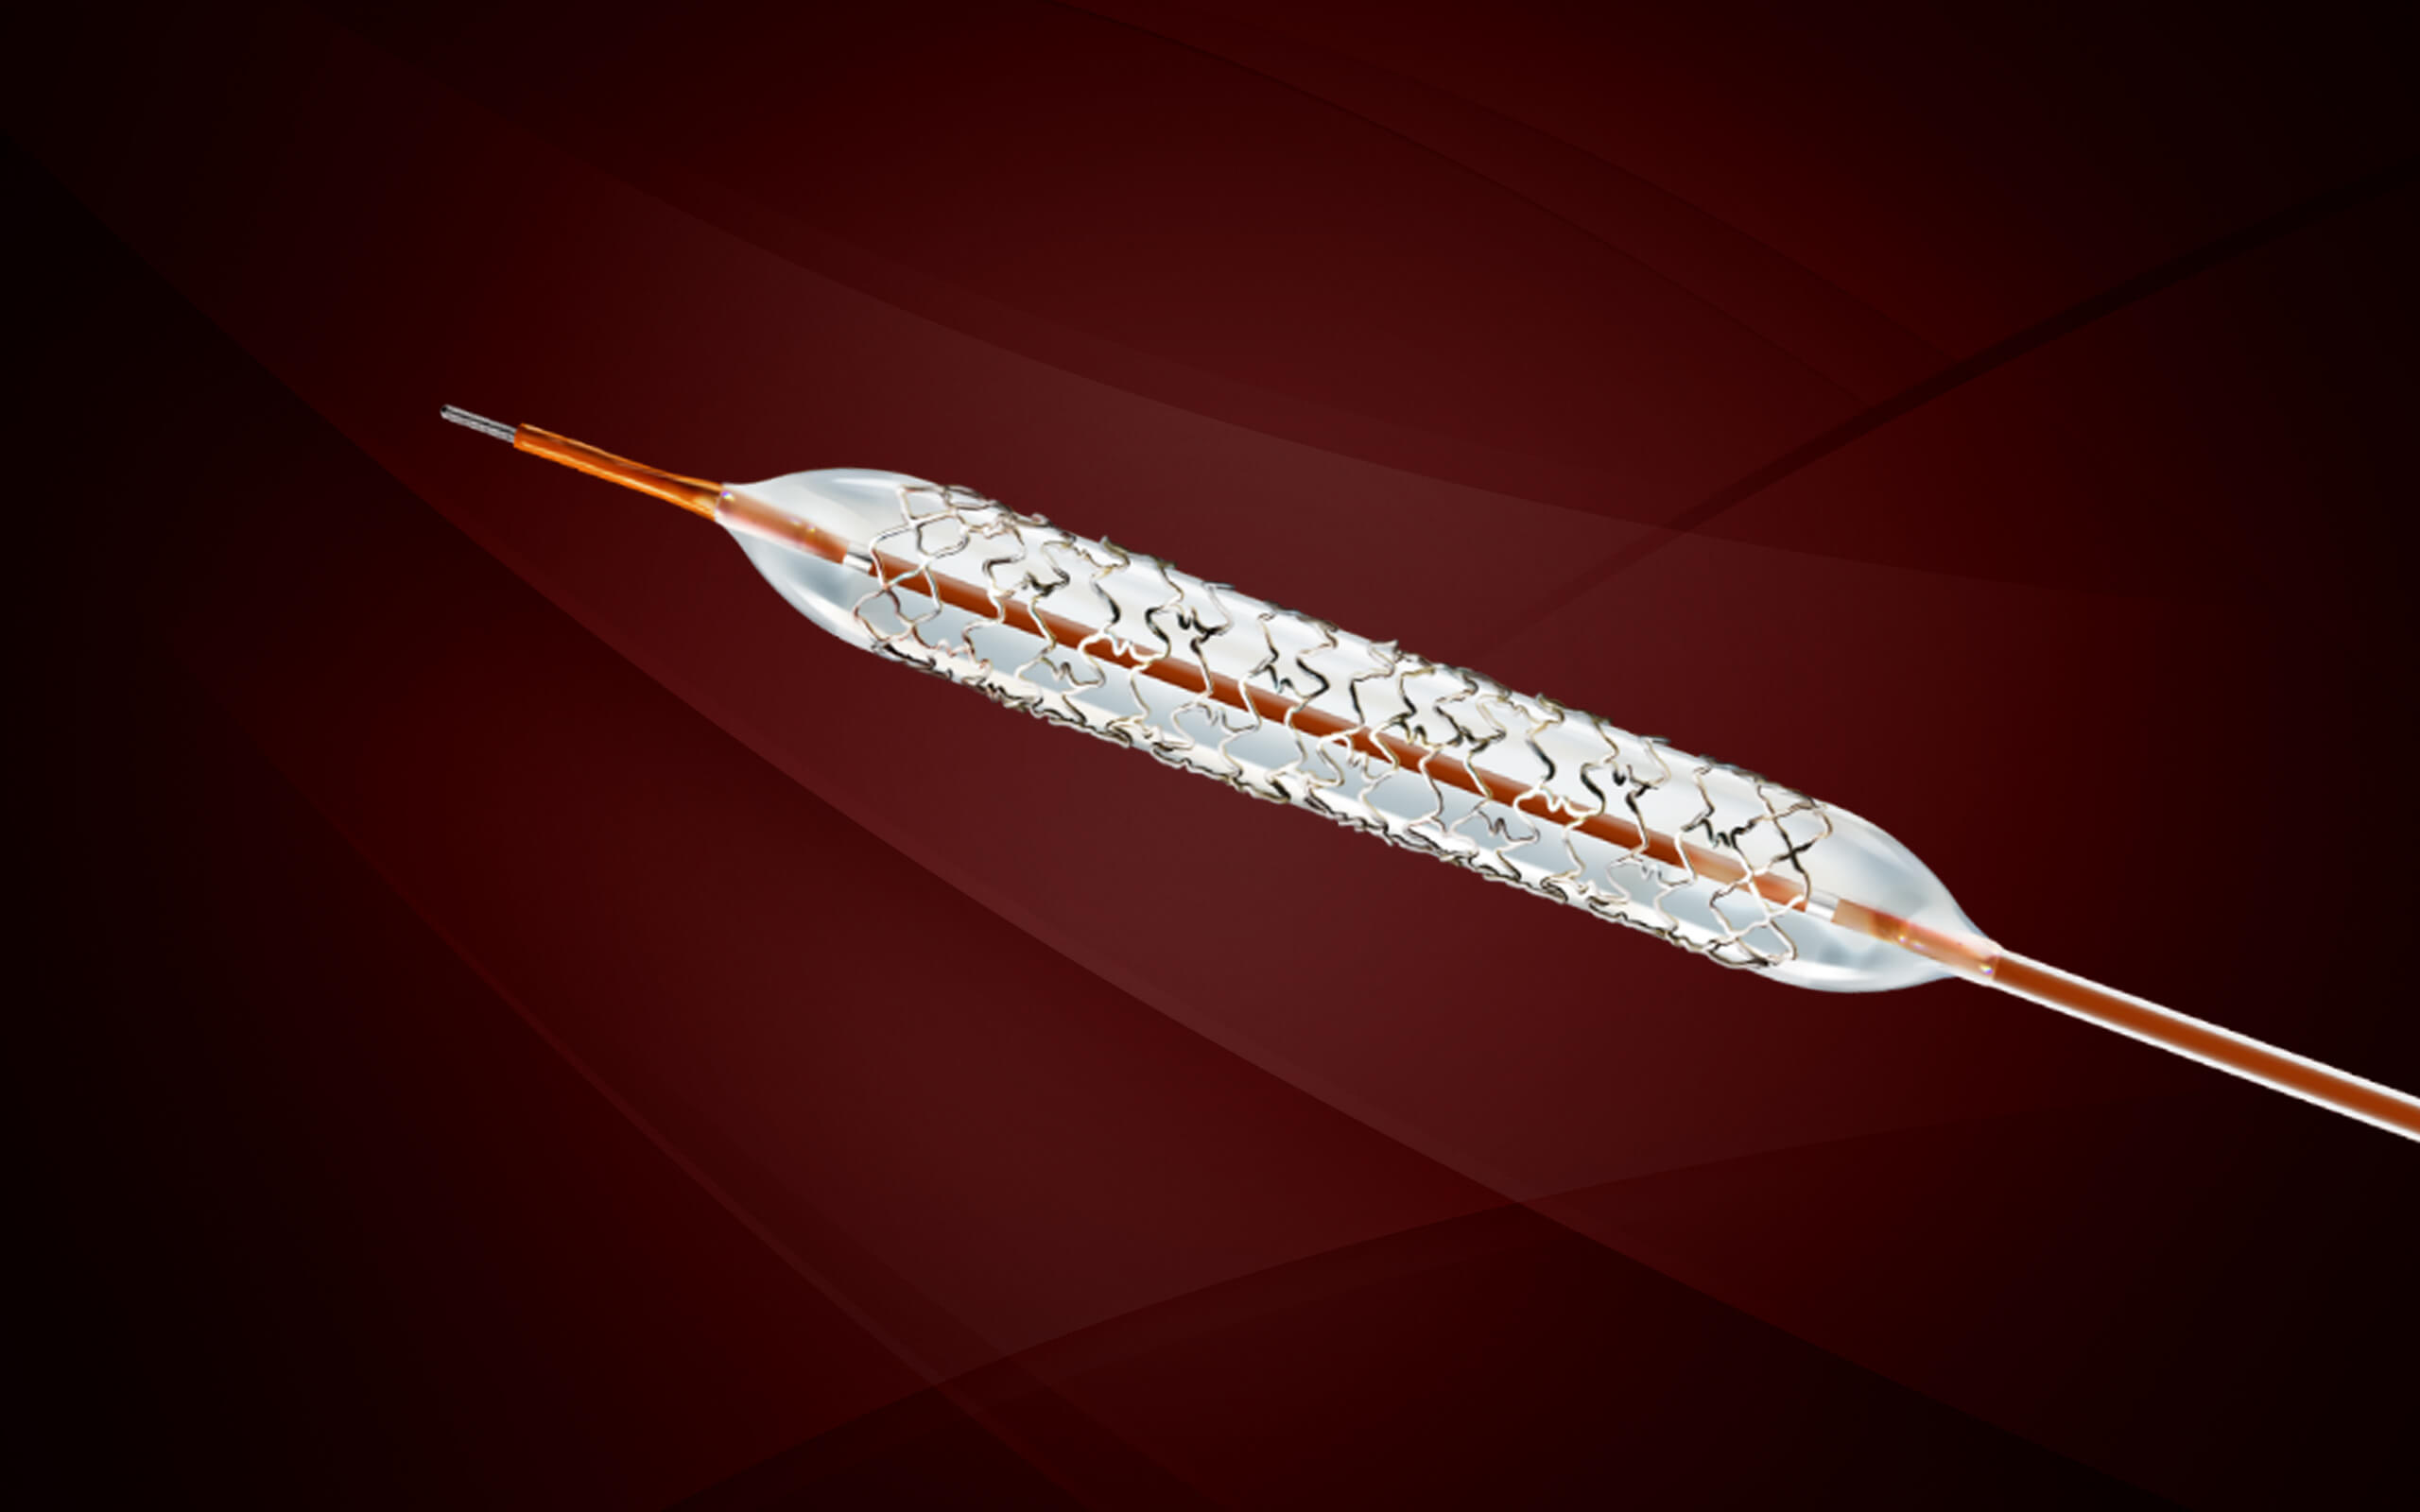 How to choose the right coronary stent?